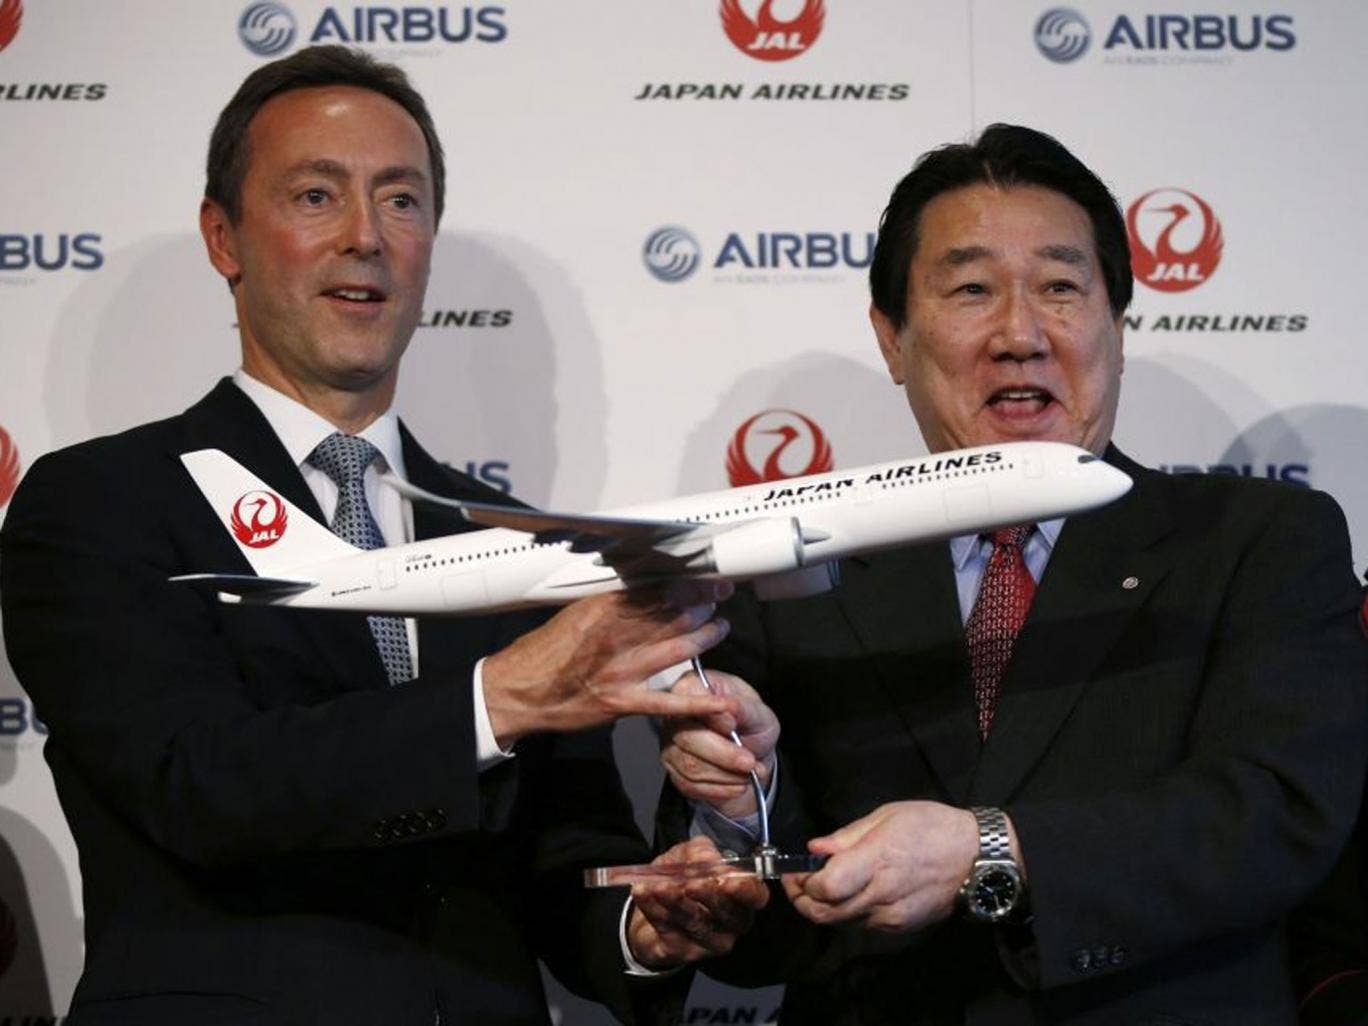 Airbus Japan's Chief Executive Fabrice Bregier (left) and Japan Airlines President Yoshiharu Ueki announced the carrier's order for 31 new planes today